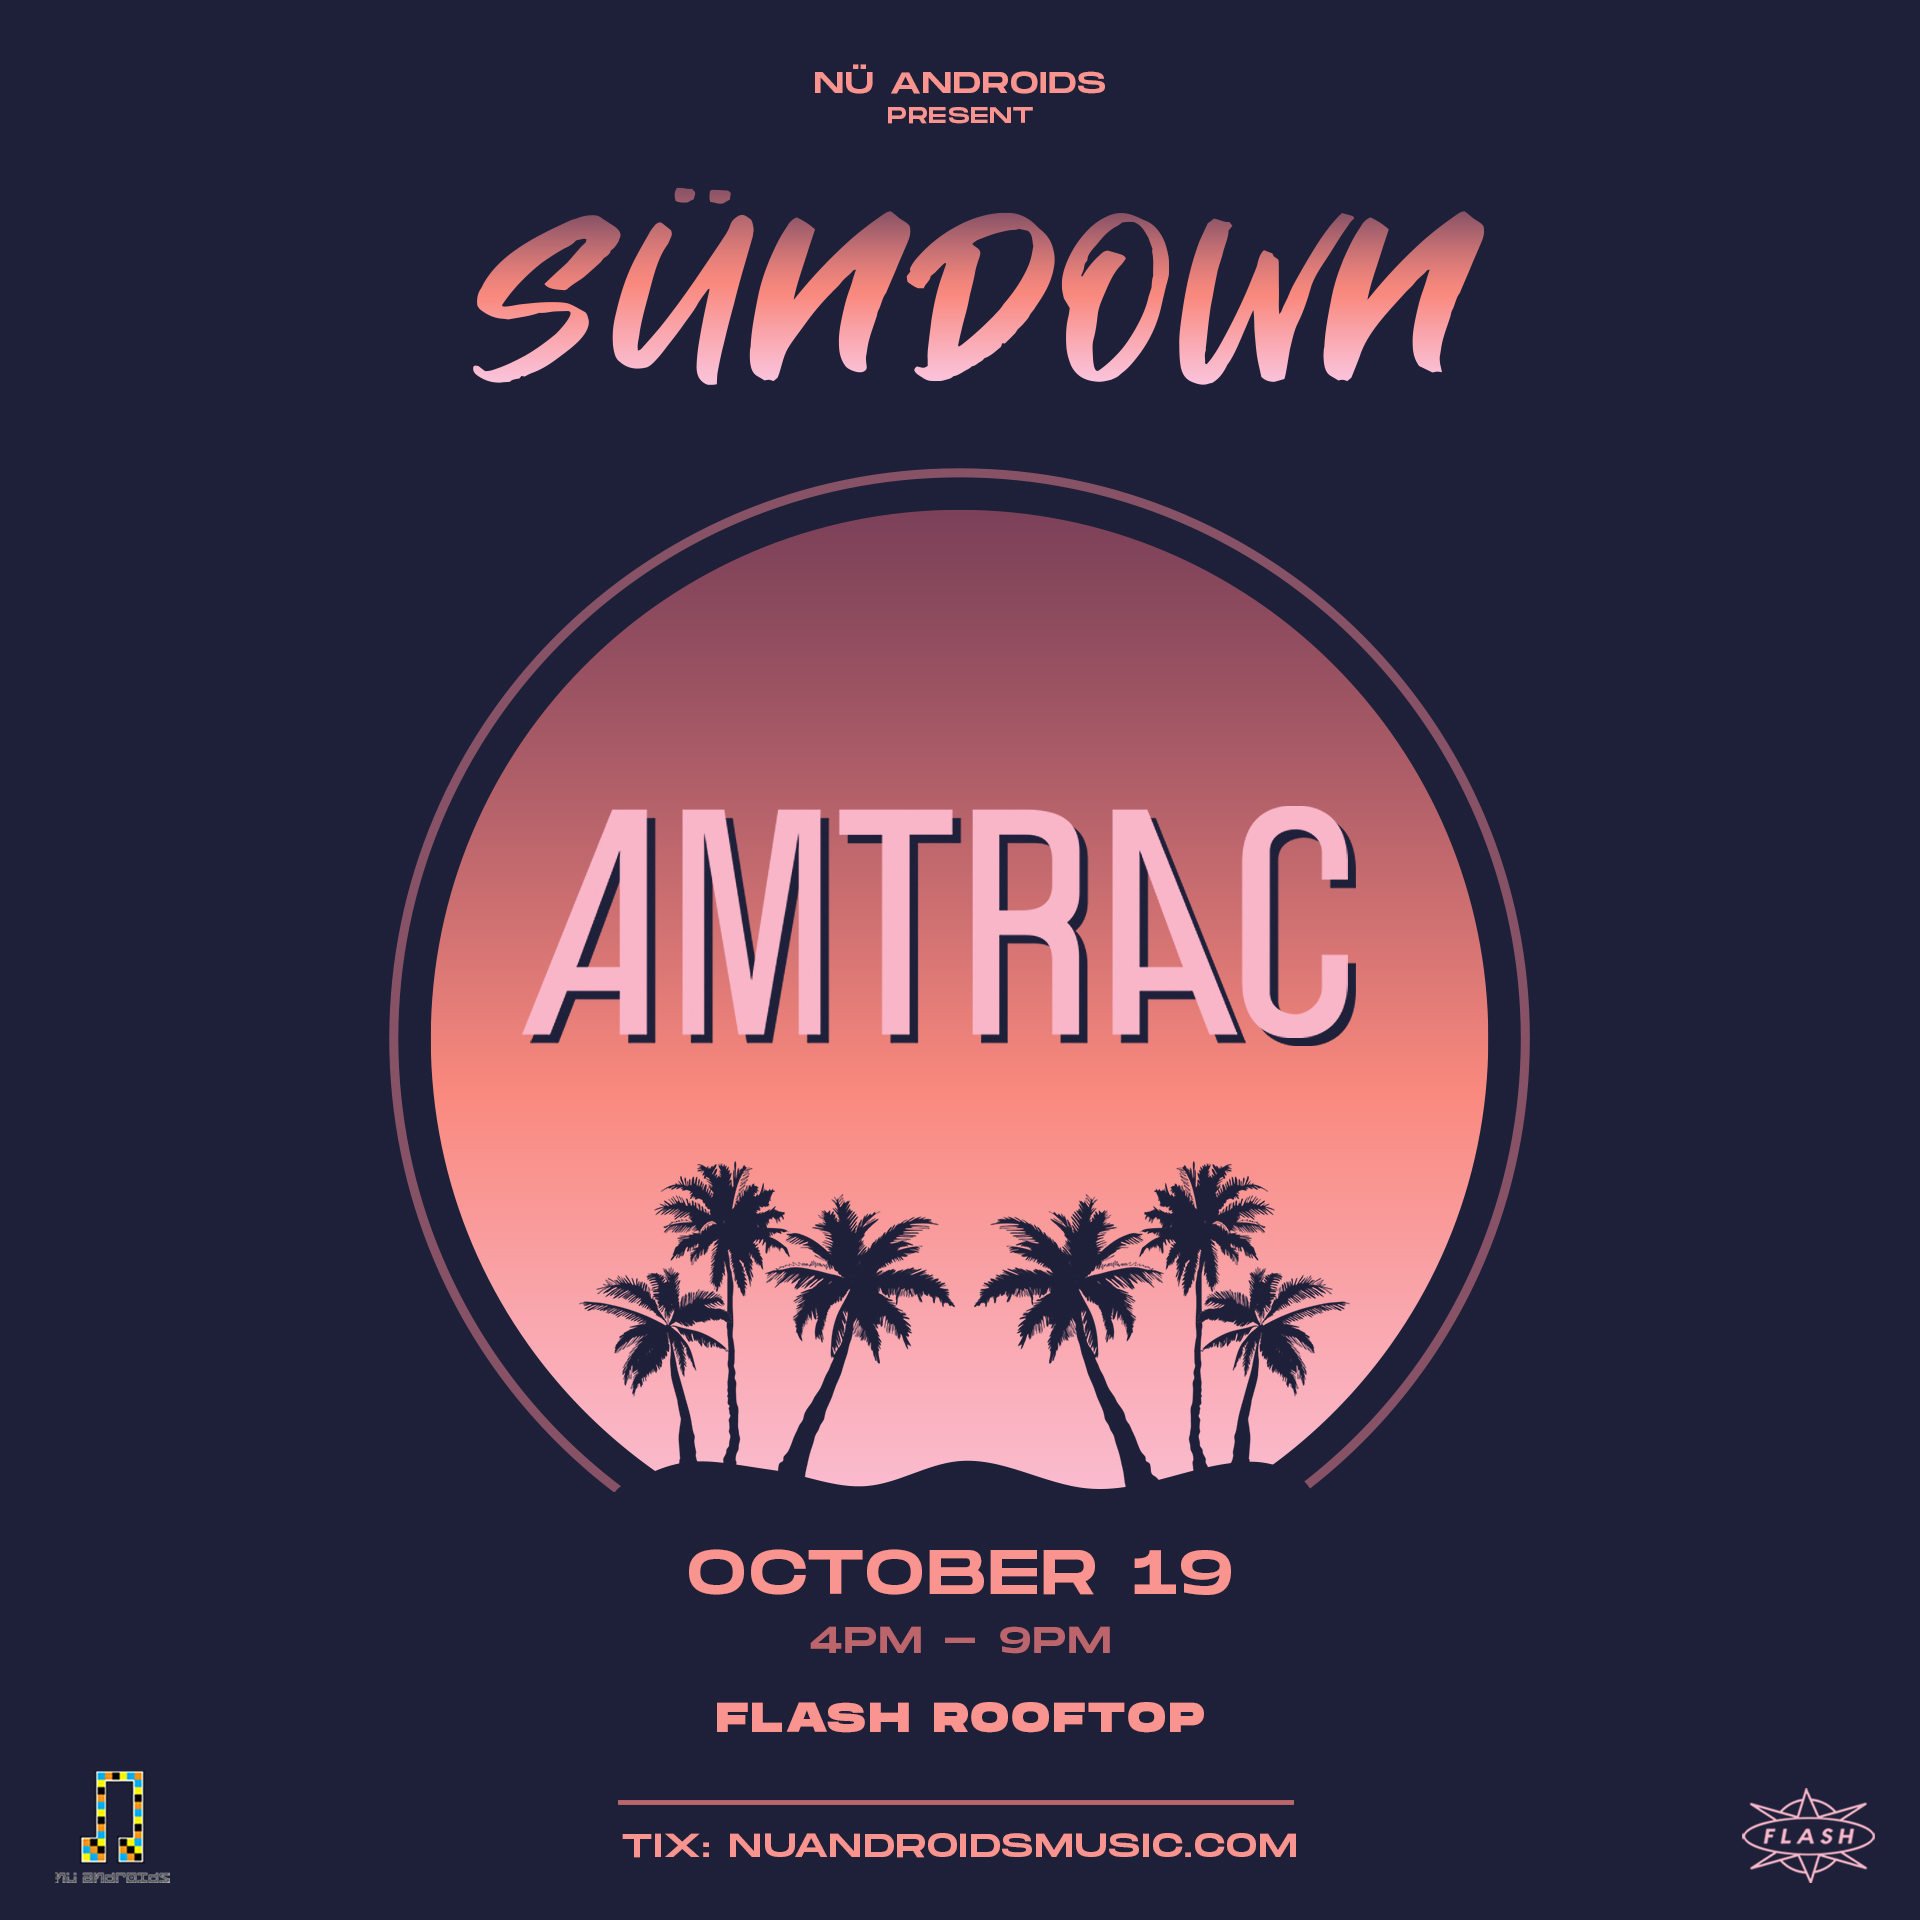 SünDown: Amtrac event thumbnail